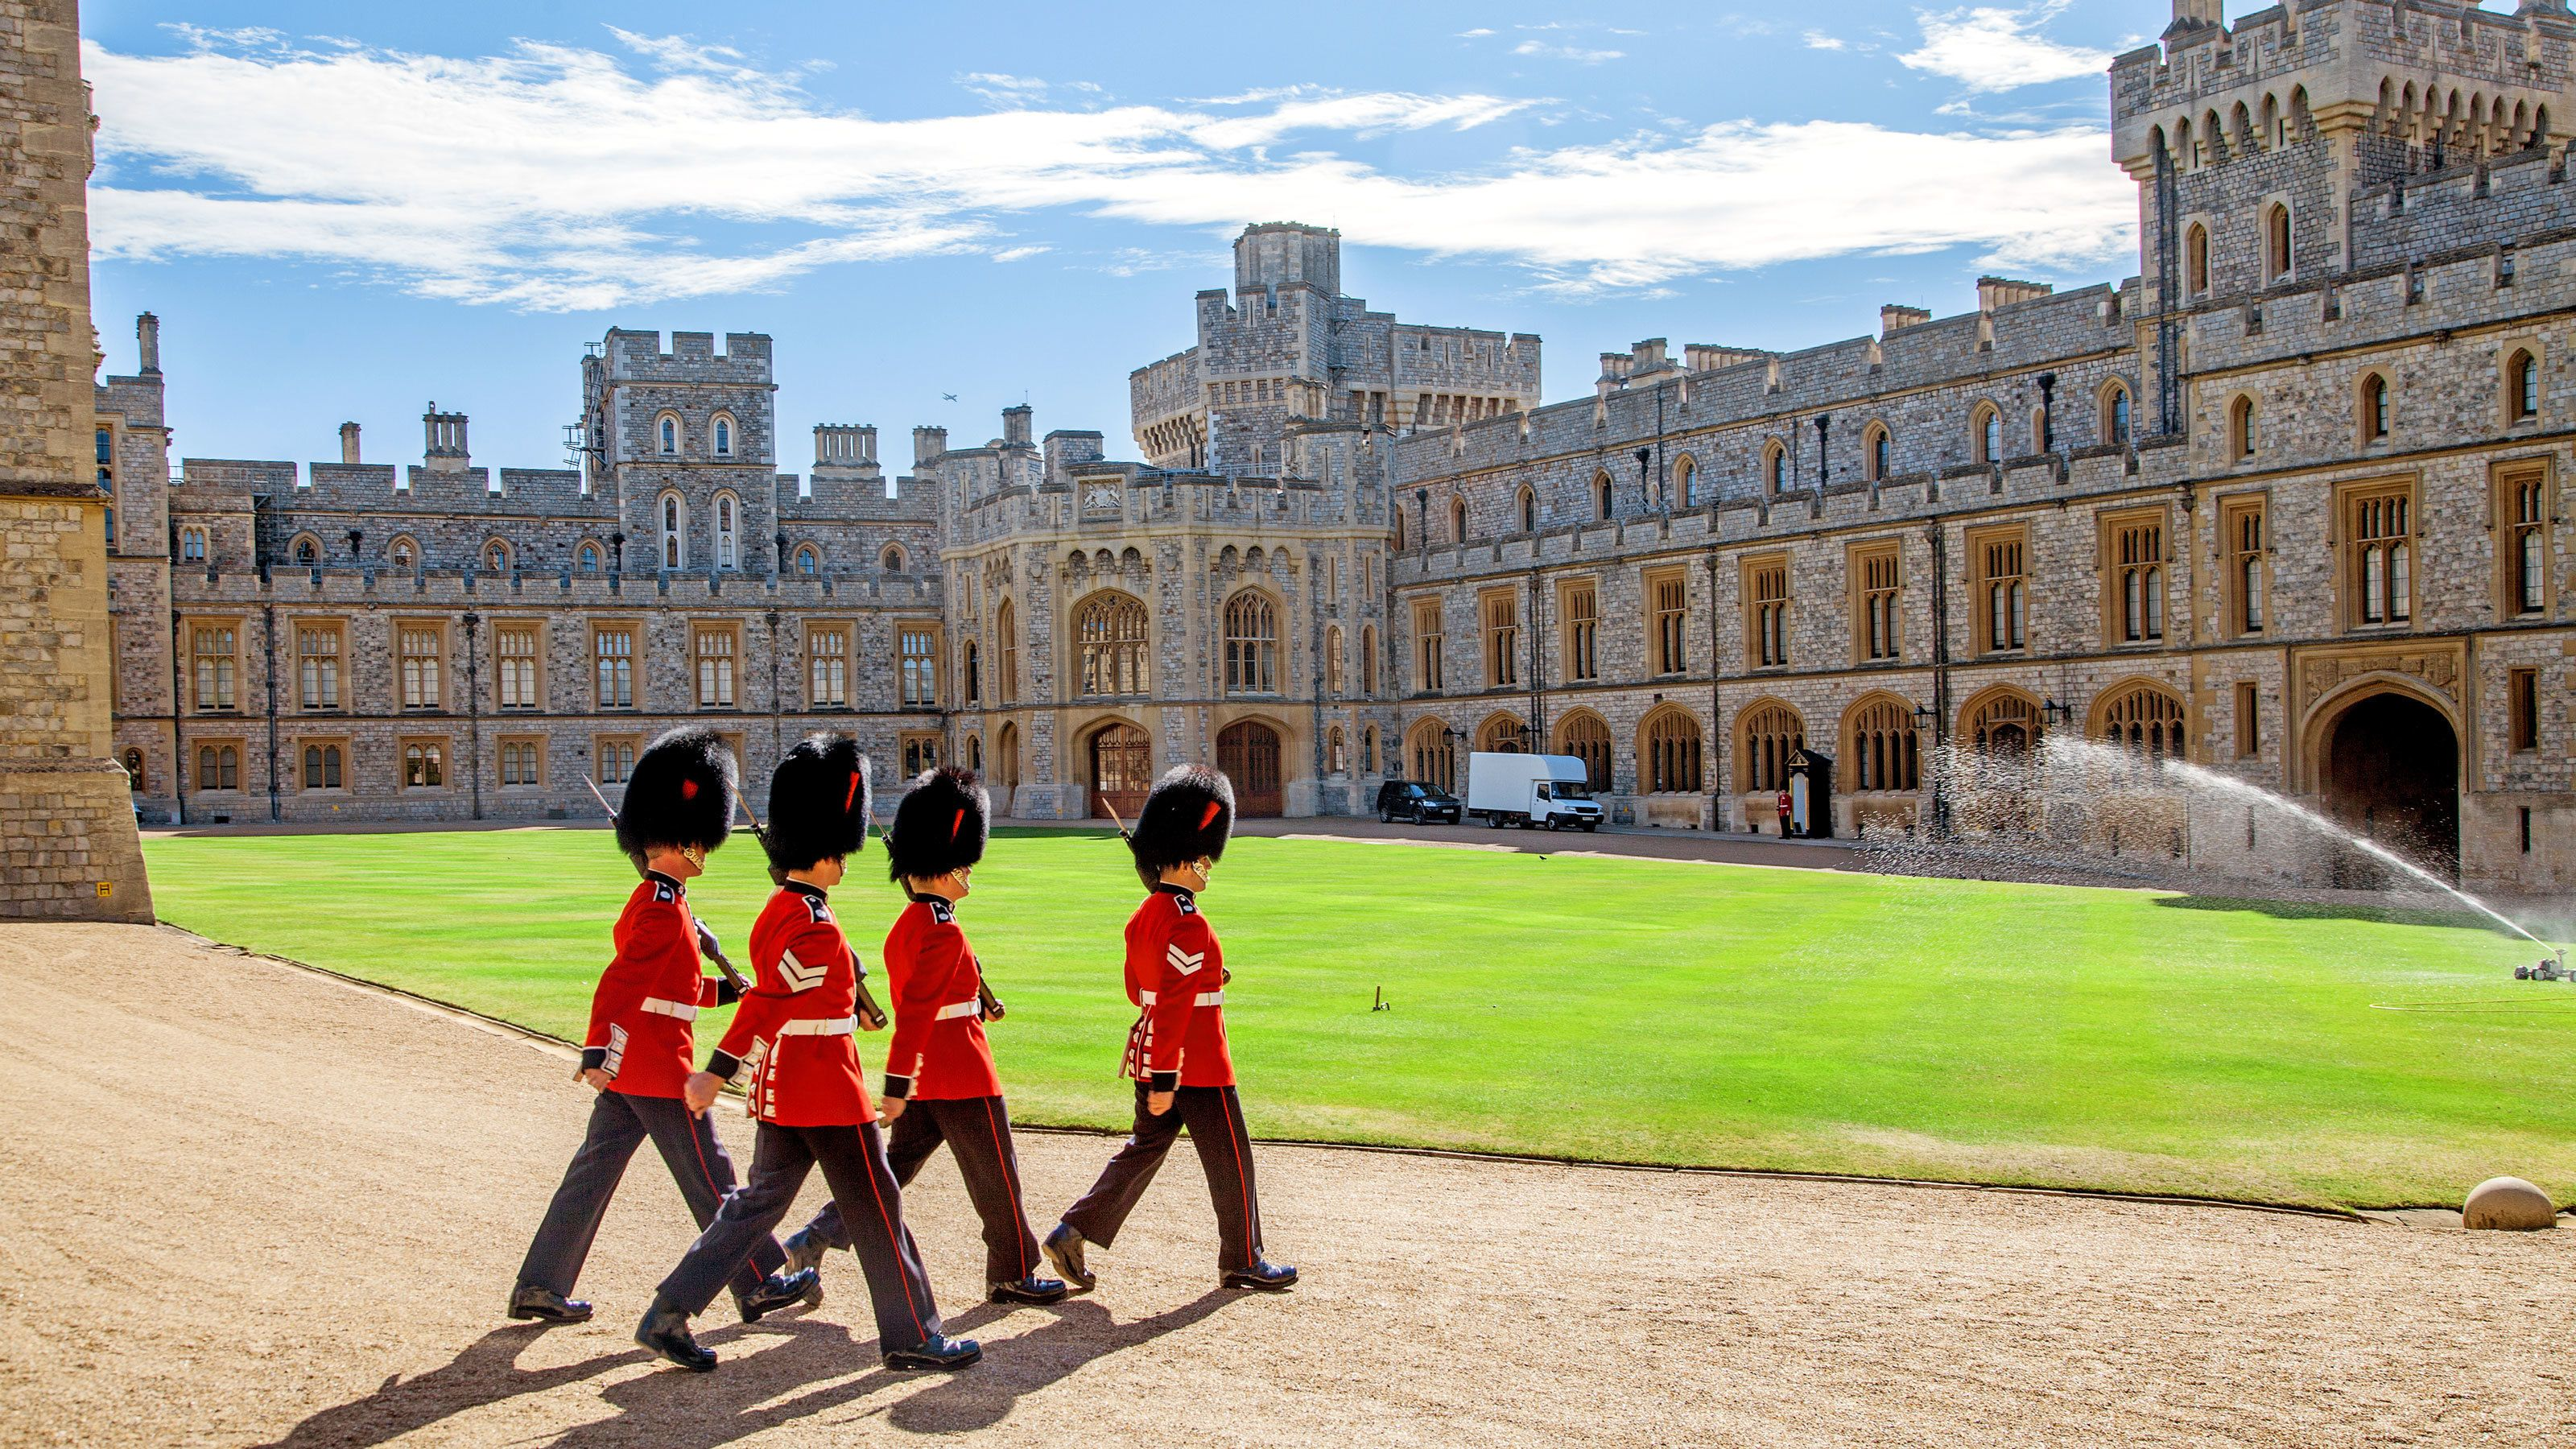 guards marching in the courtyard of Bath in London